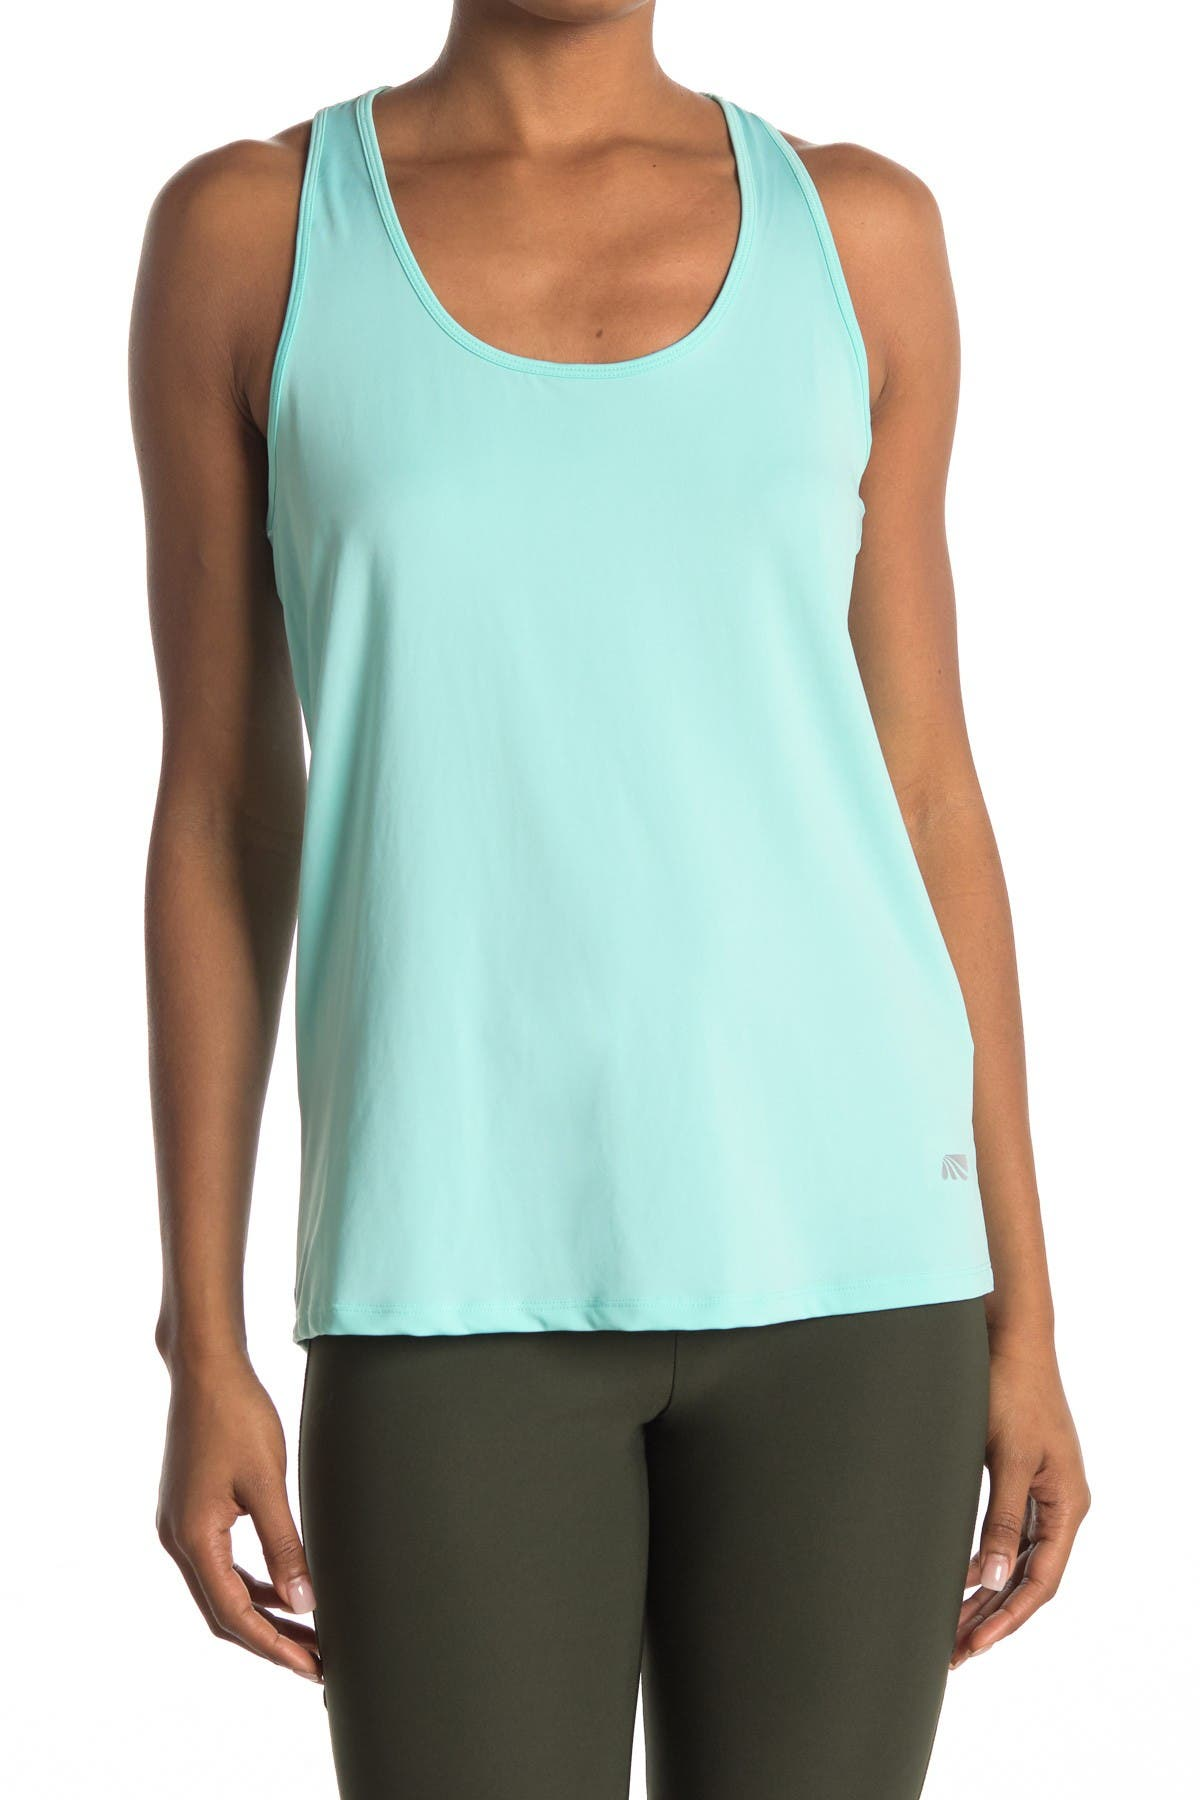 Image of The Balance Collection Resist Racerback Tank